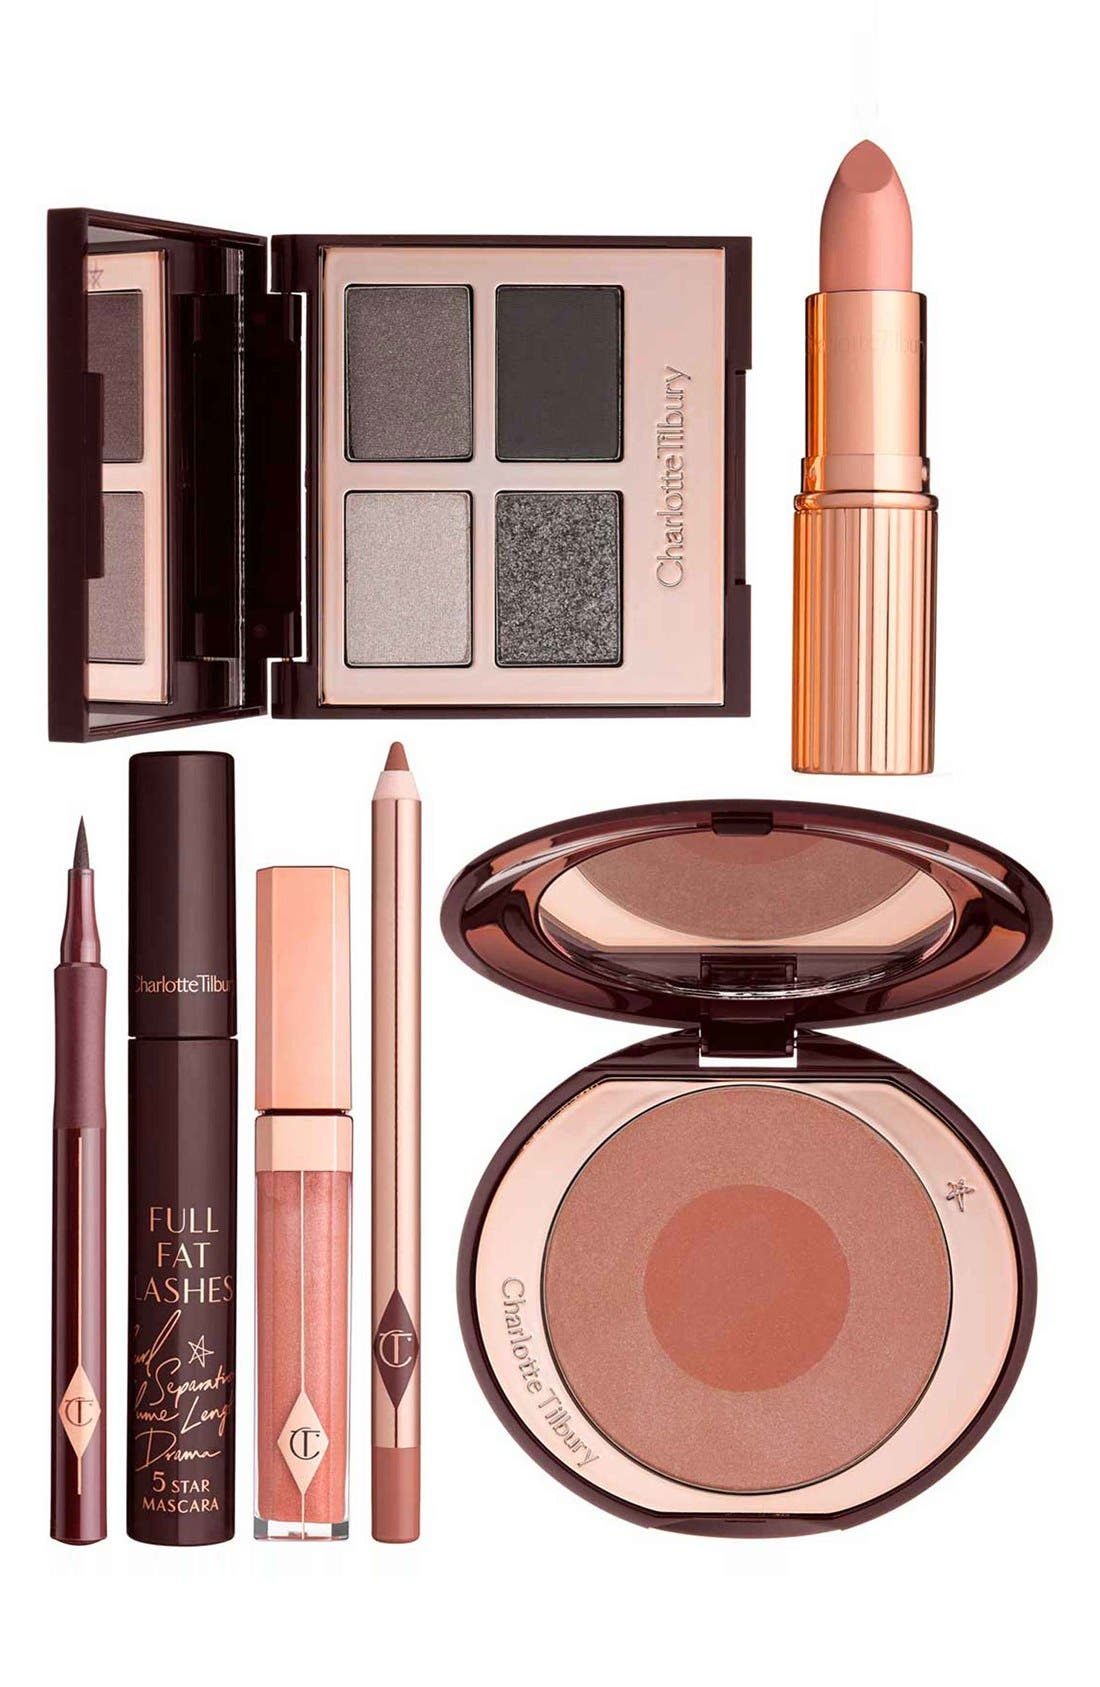 Charlotte Tilbury 'The Rock Chick' Set ($246 Value)